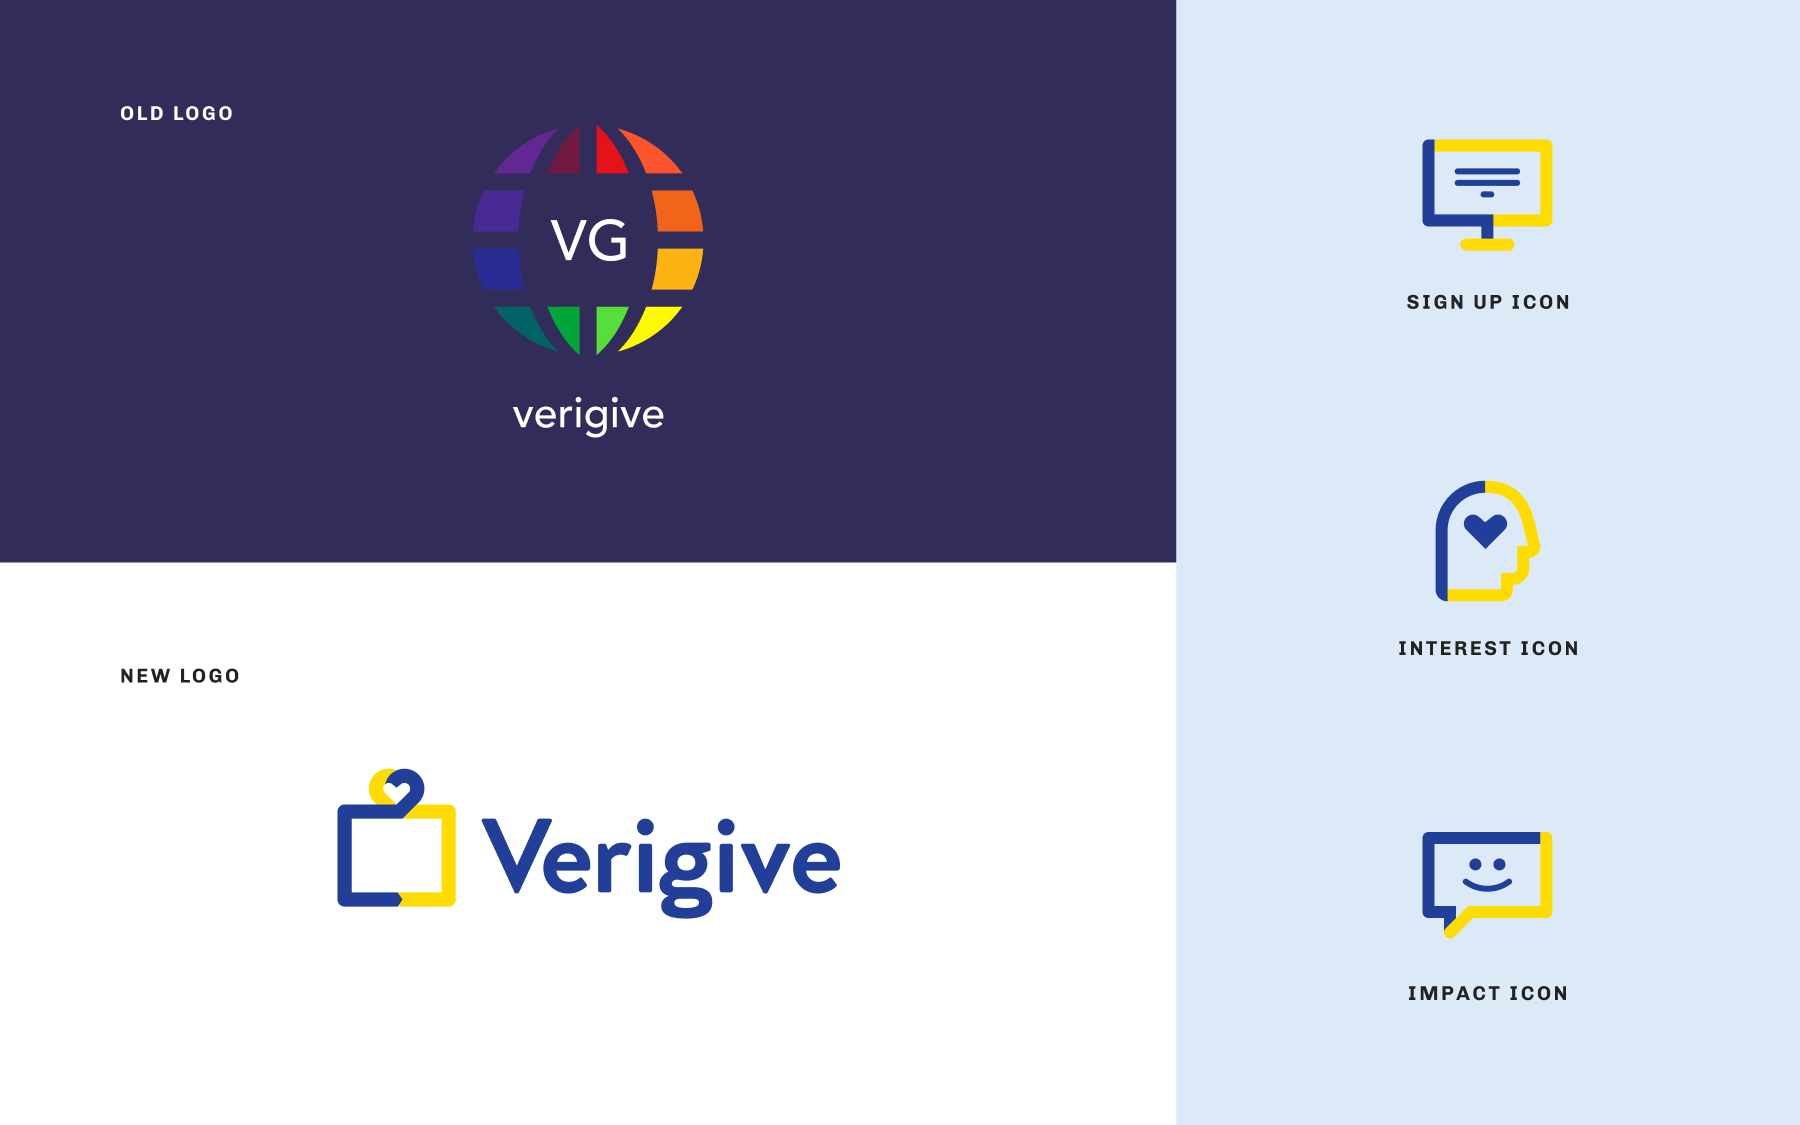 New verigive logo and icons